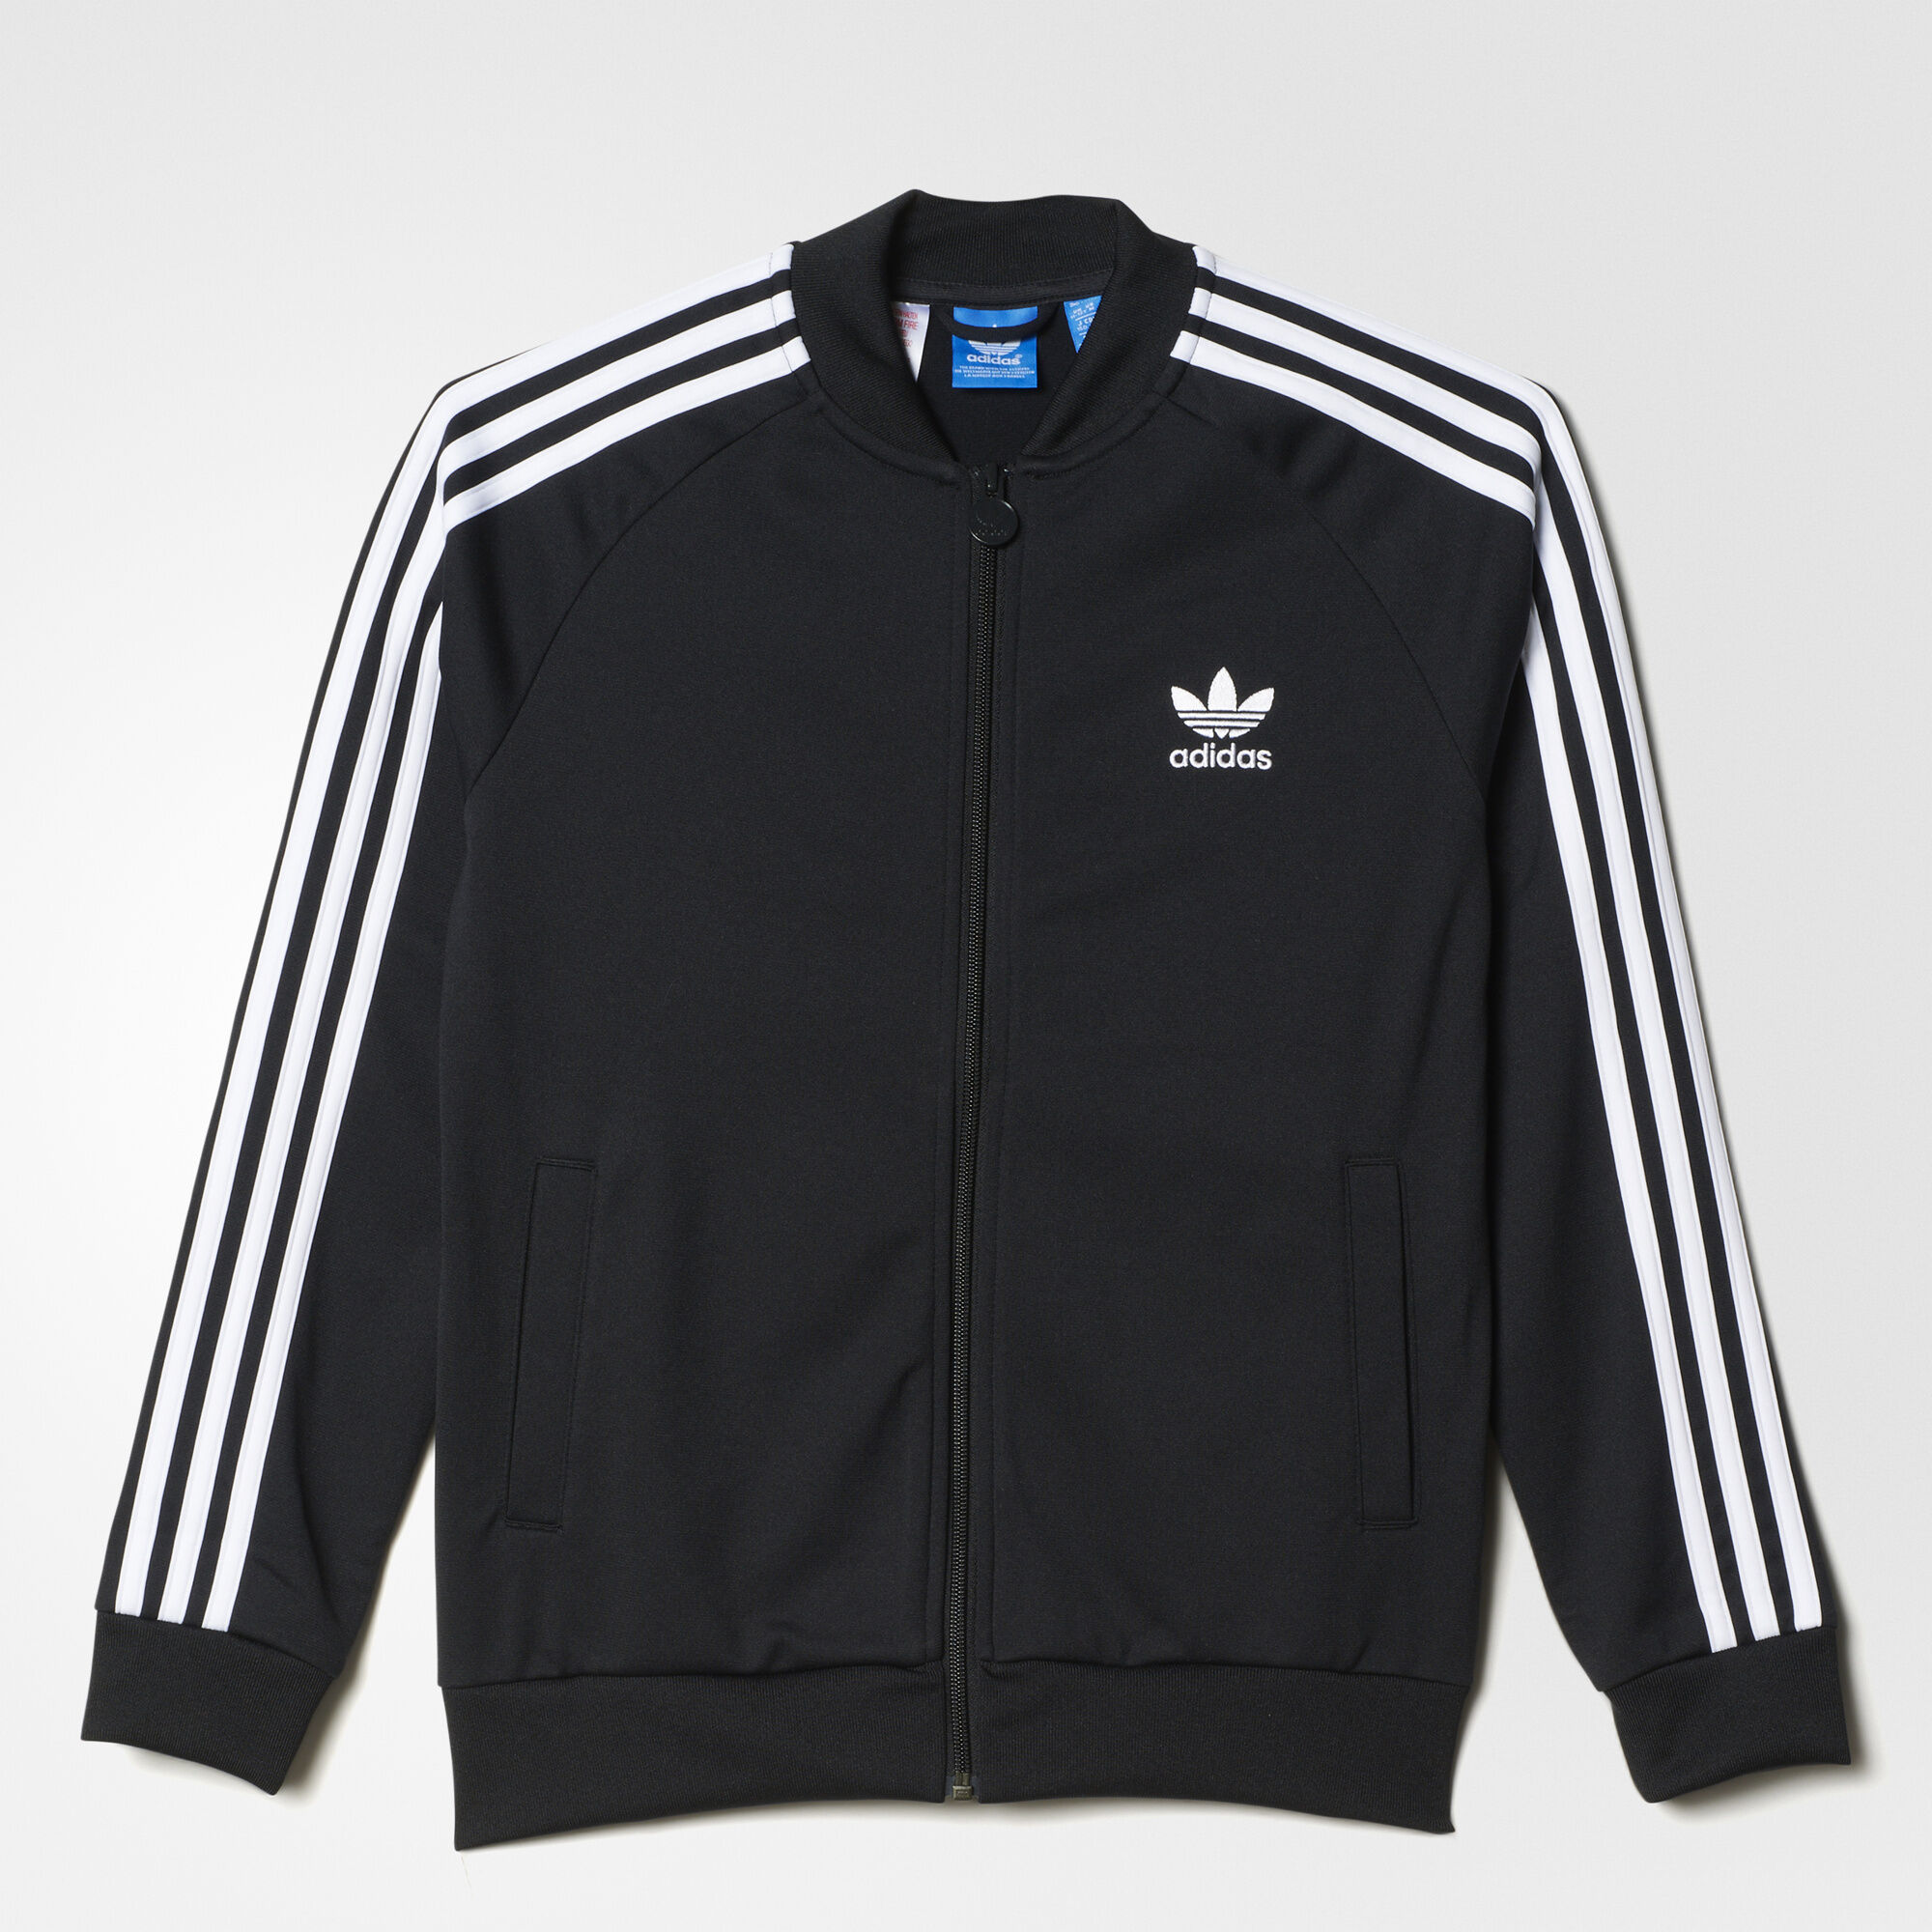 boys tracksuits for sale - iOffer